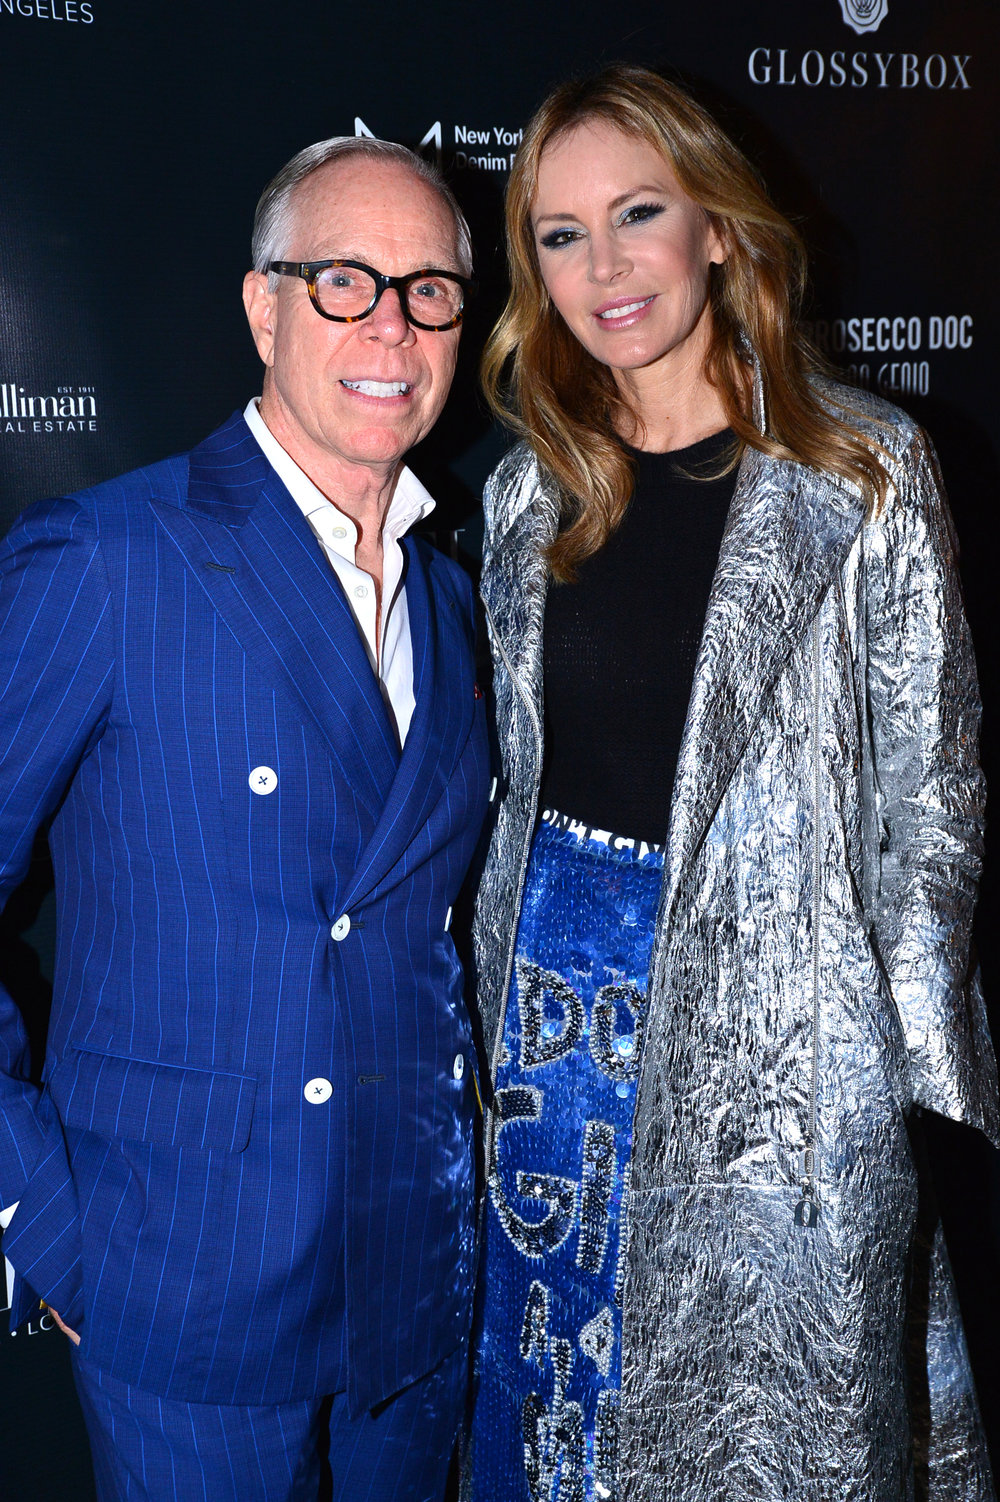 Tommy Hilfiger and Dee Ocleppo Hilfiger.JPG